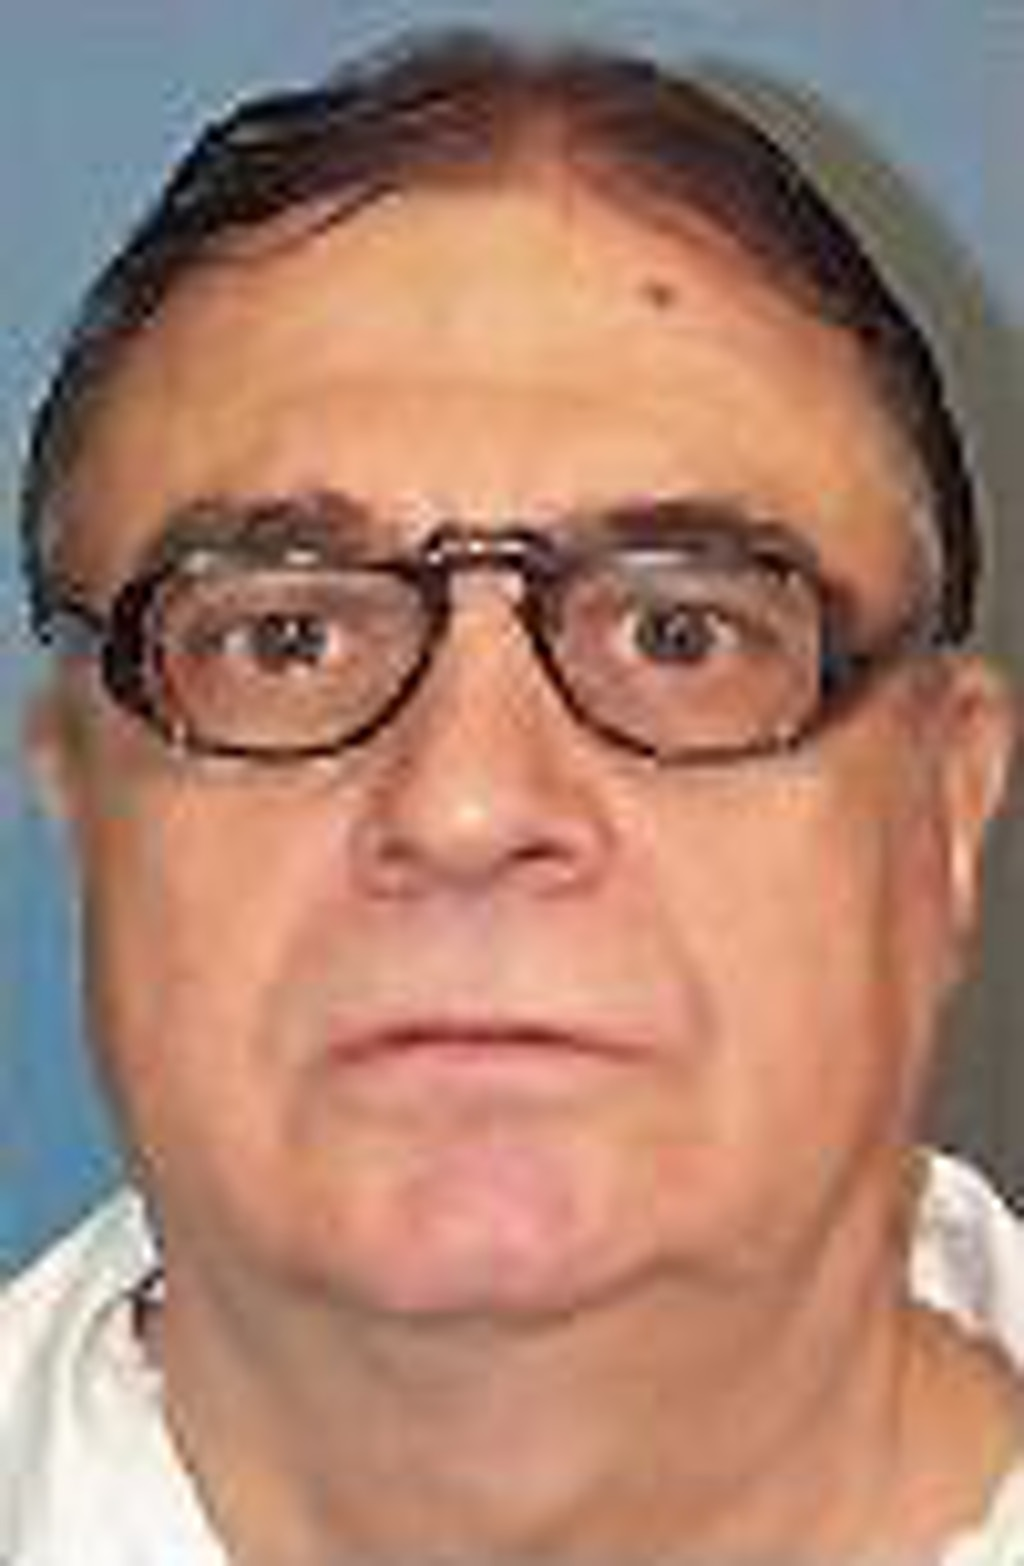 POSSIBLE INNOCENCE: Alabama Denies DNA Testing for Man Facing Execution